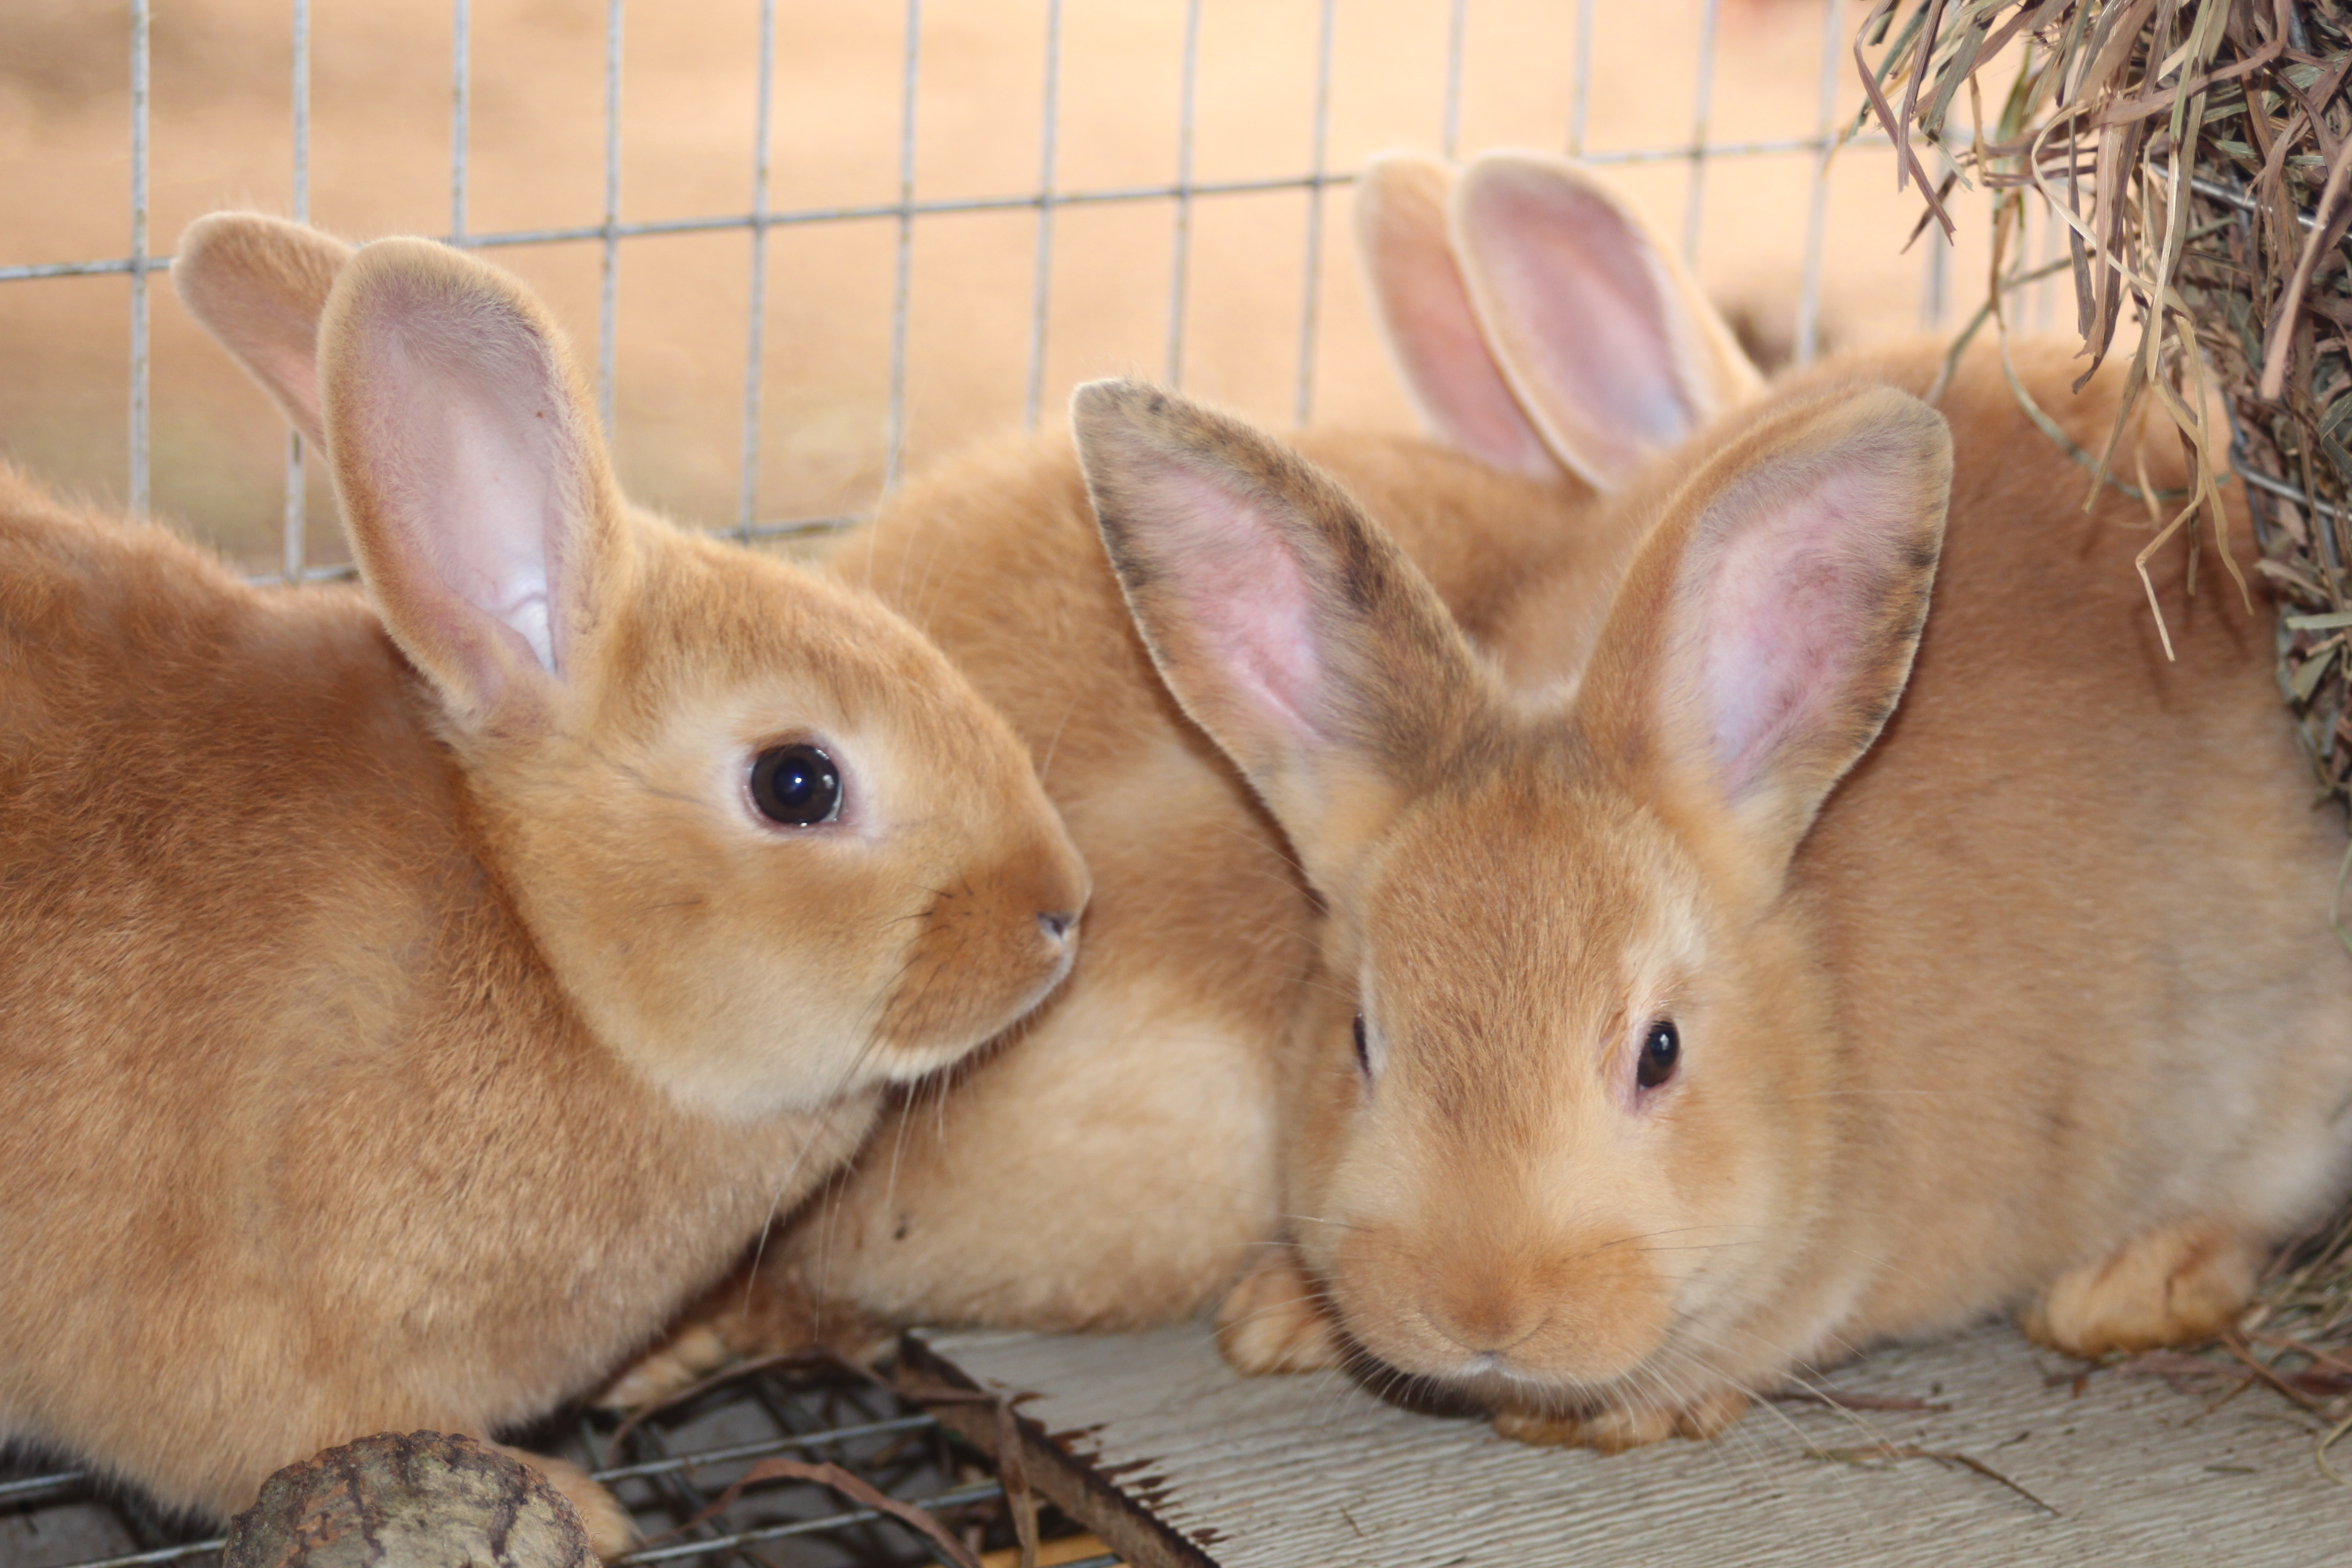 NW, Red/White Cross Rabbits